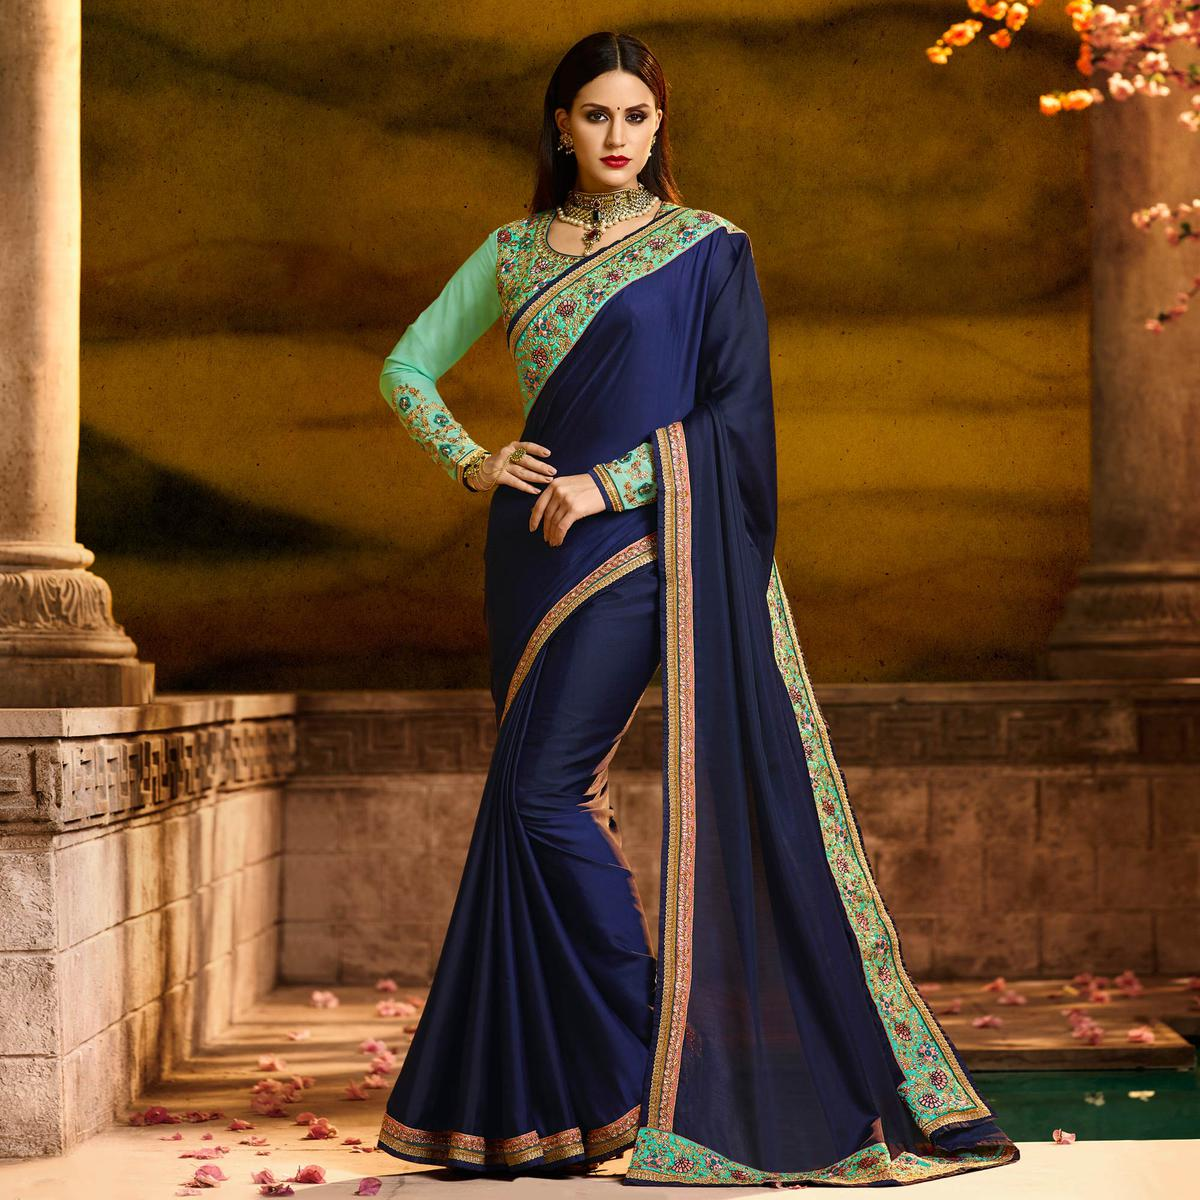 5319319a98 Buy Adorning Navy Blue Colored Partywear Embroidered Barfi Silk Saree for  womens online India, Best Prices, Reviews - Peachmode